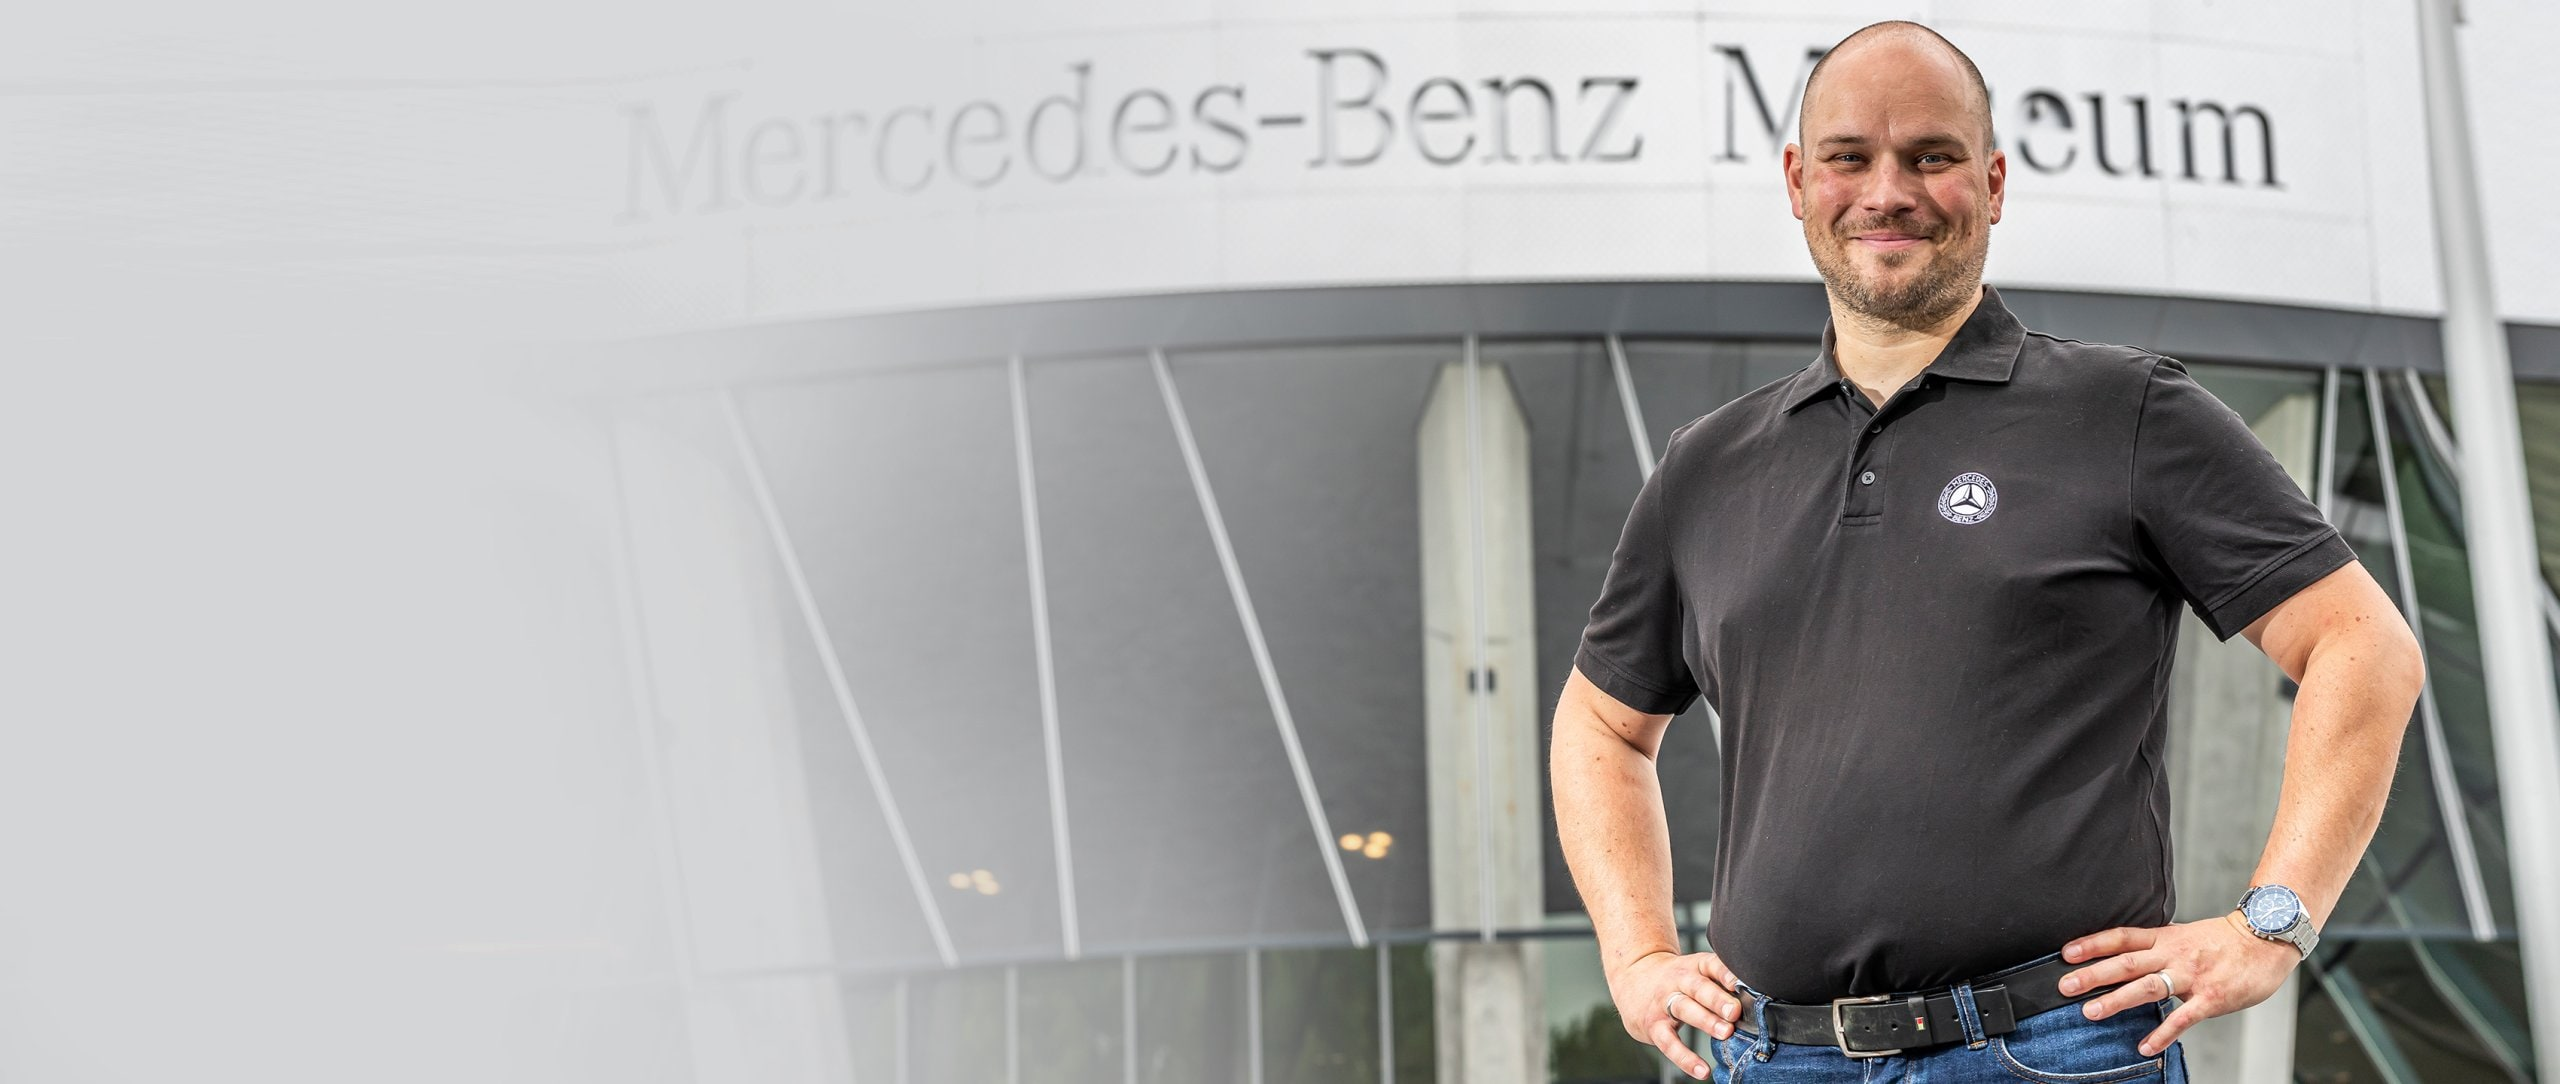 Benedikt Weiler in front of the Mercedes-Benz Museum.